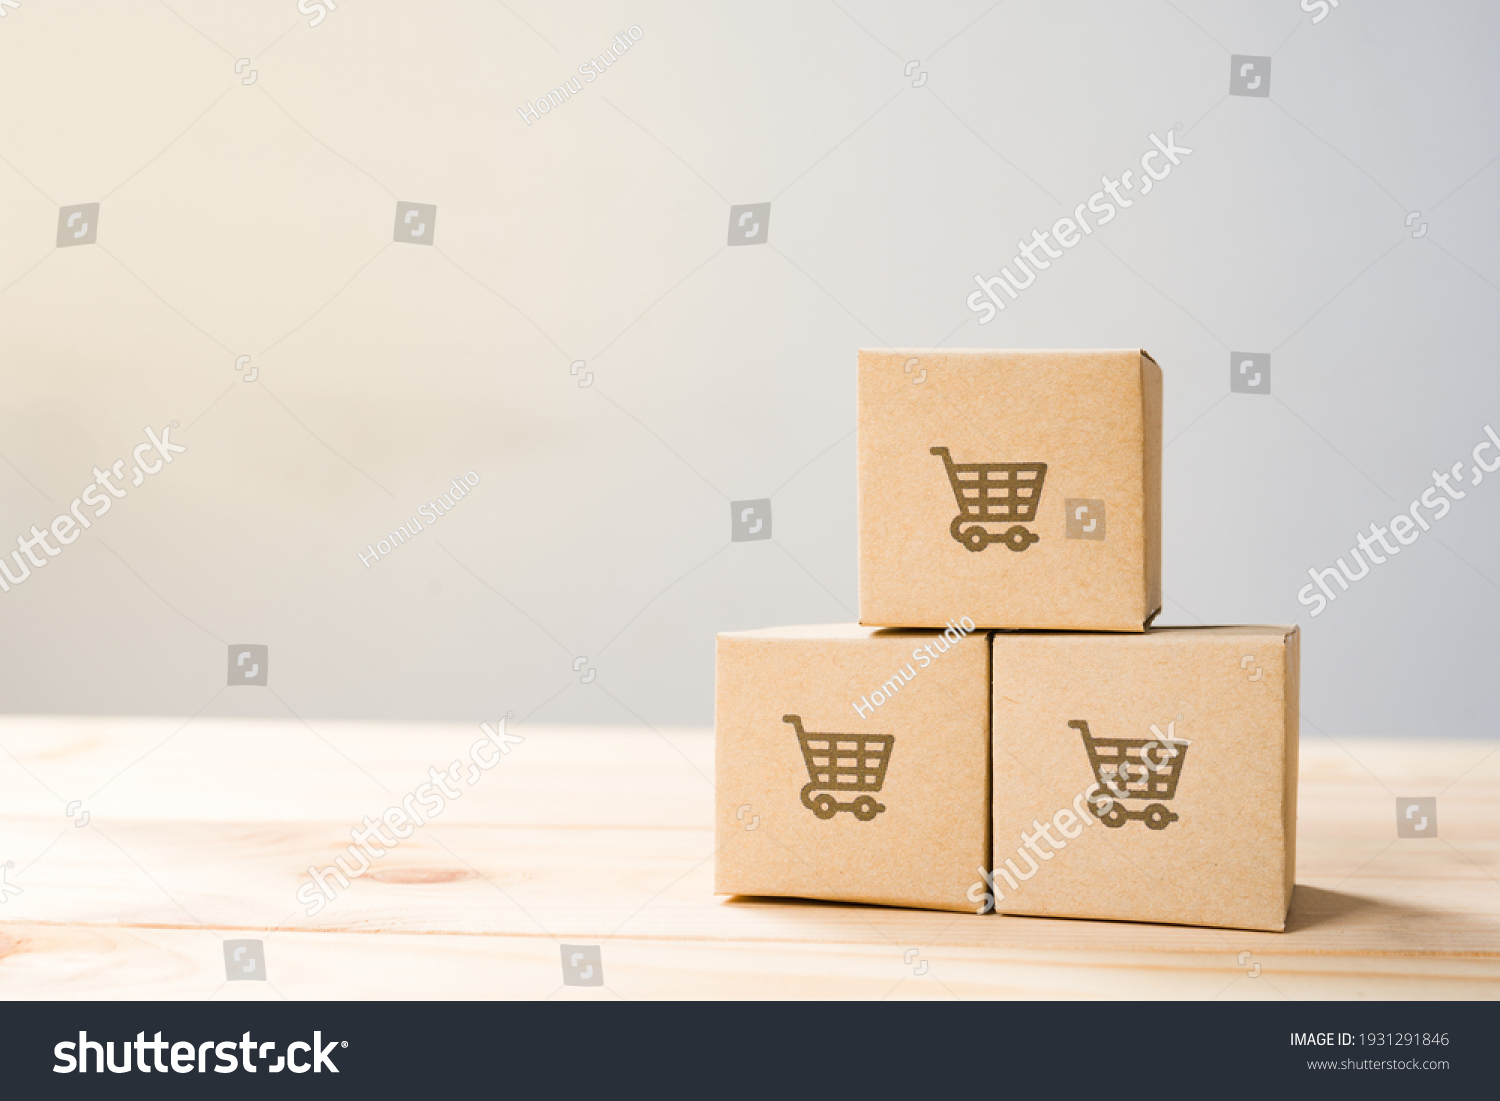 Online shopping ,Shopping cart logo on boxes on wooden table. #1931291846